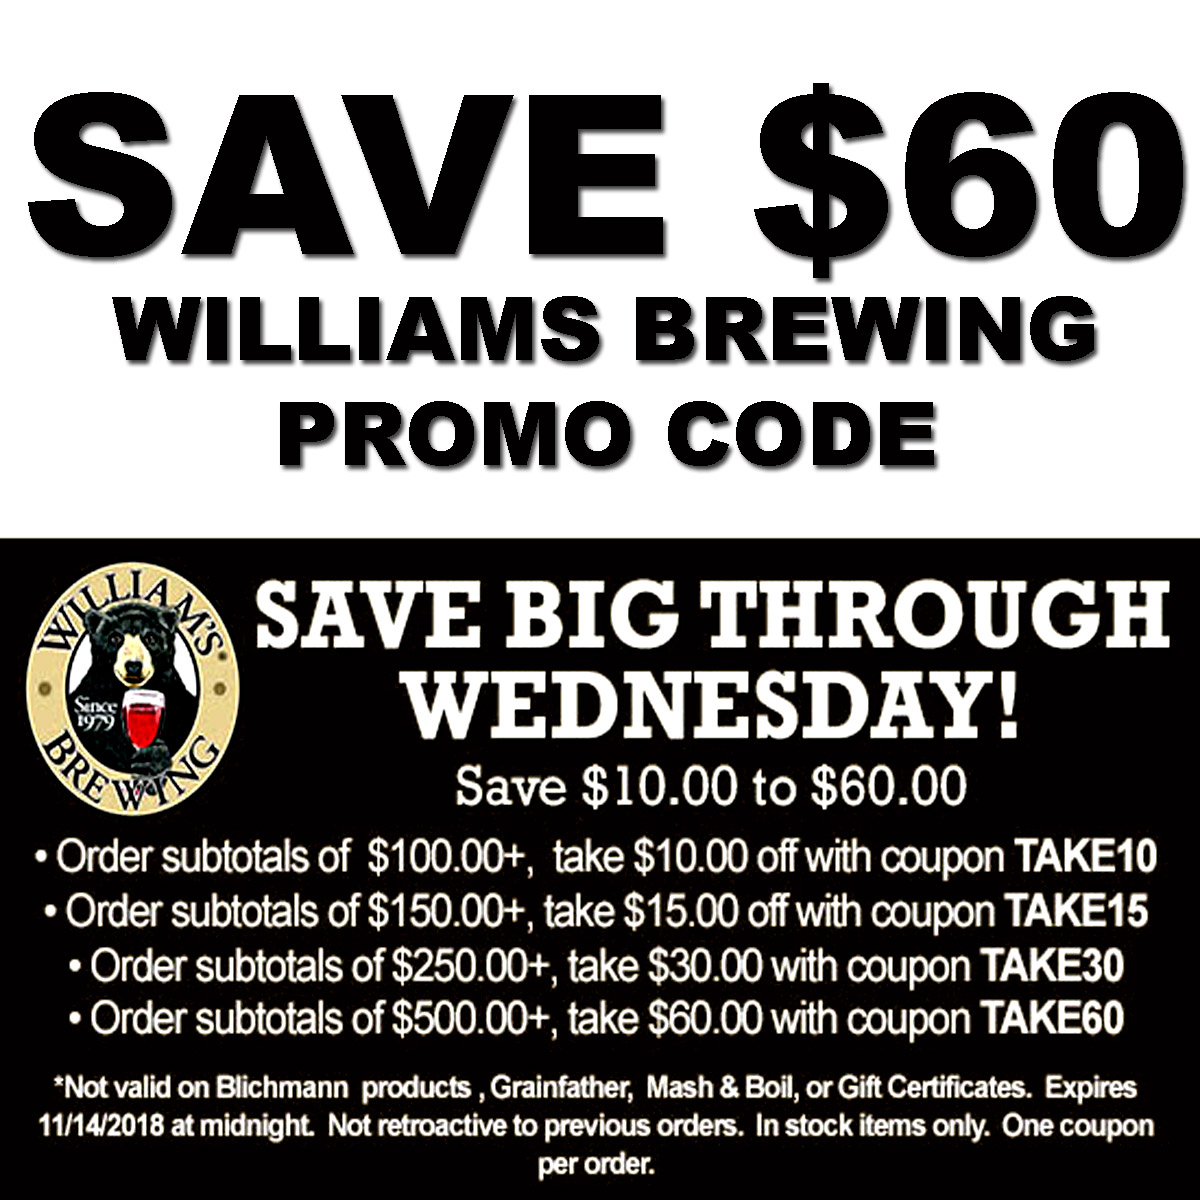 Save up to $60 on your WilliamsBrewing.com Purchase with this William's Brewing Coupon Coupon Code